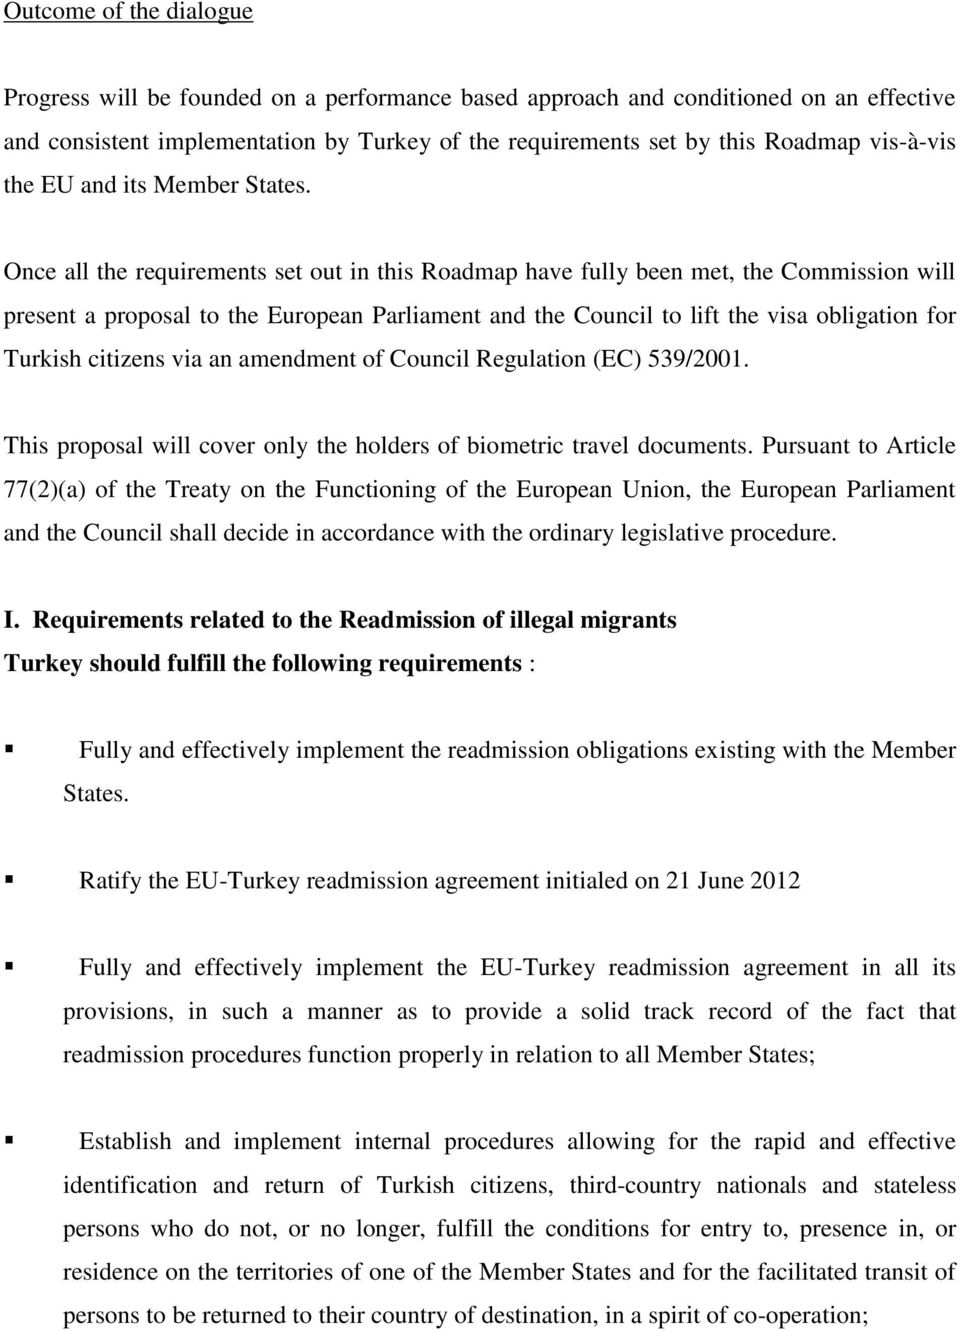 Once all the requirements set out in this Roadmap have fully been met, the Commission will present a proposal to the European Parliament and the Council to lift the visa obligation for Turkish